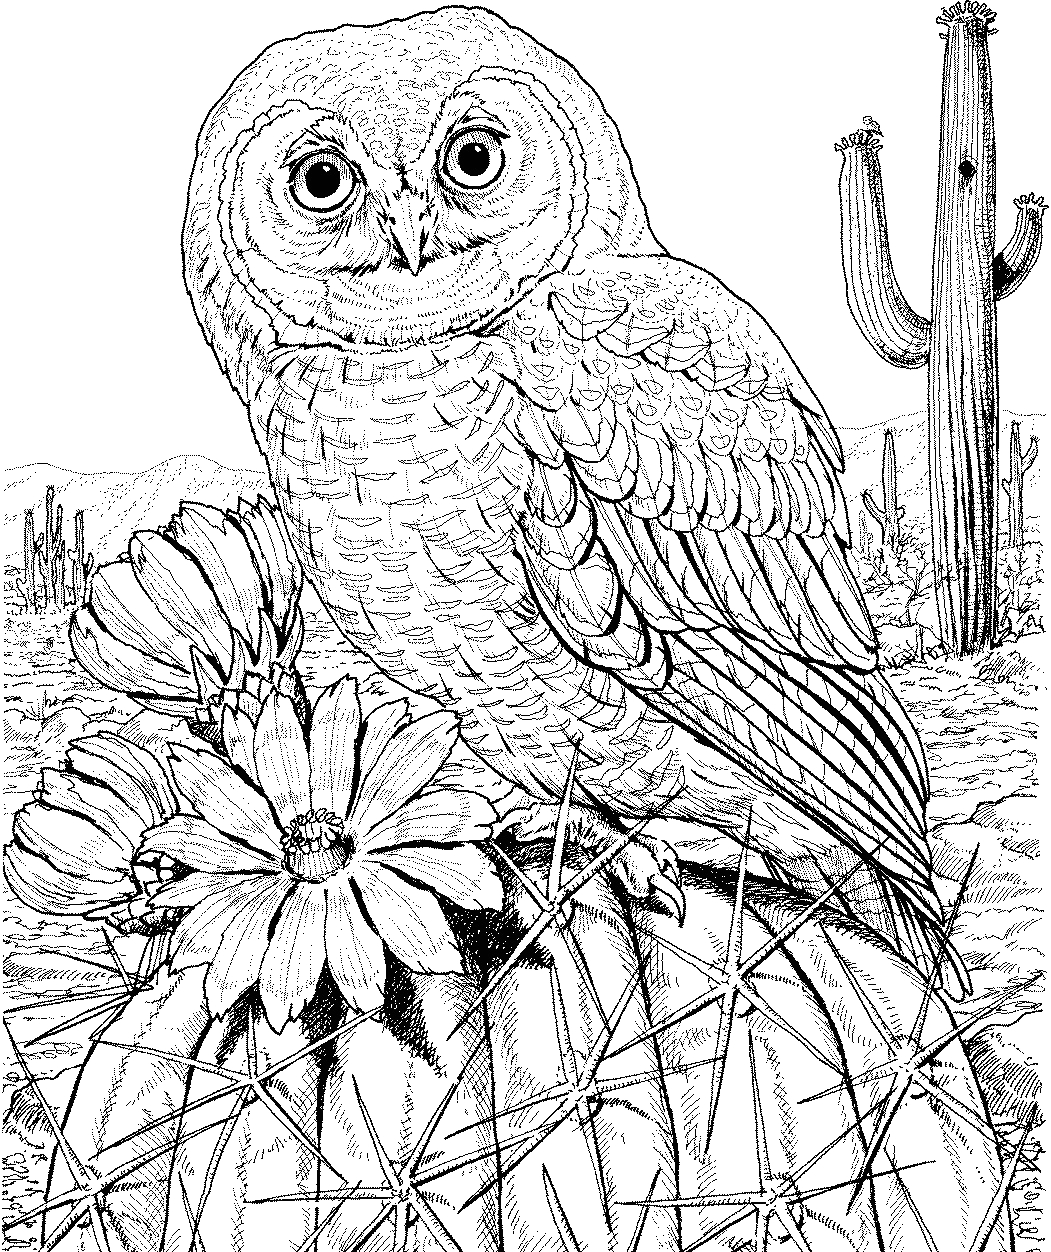 Owl Coloring Pages to Print for Adults 10 Difficult Owl Coloring Page for Adults